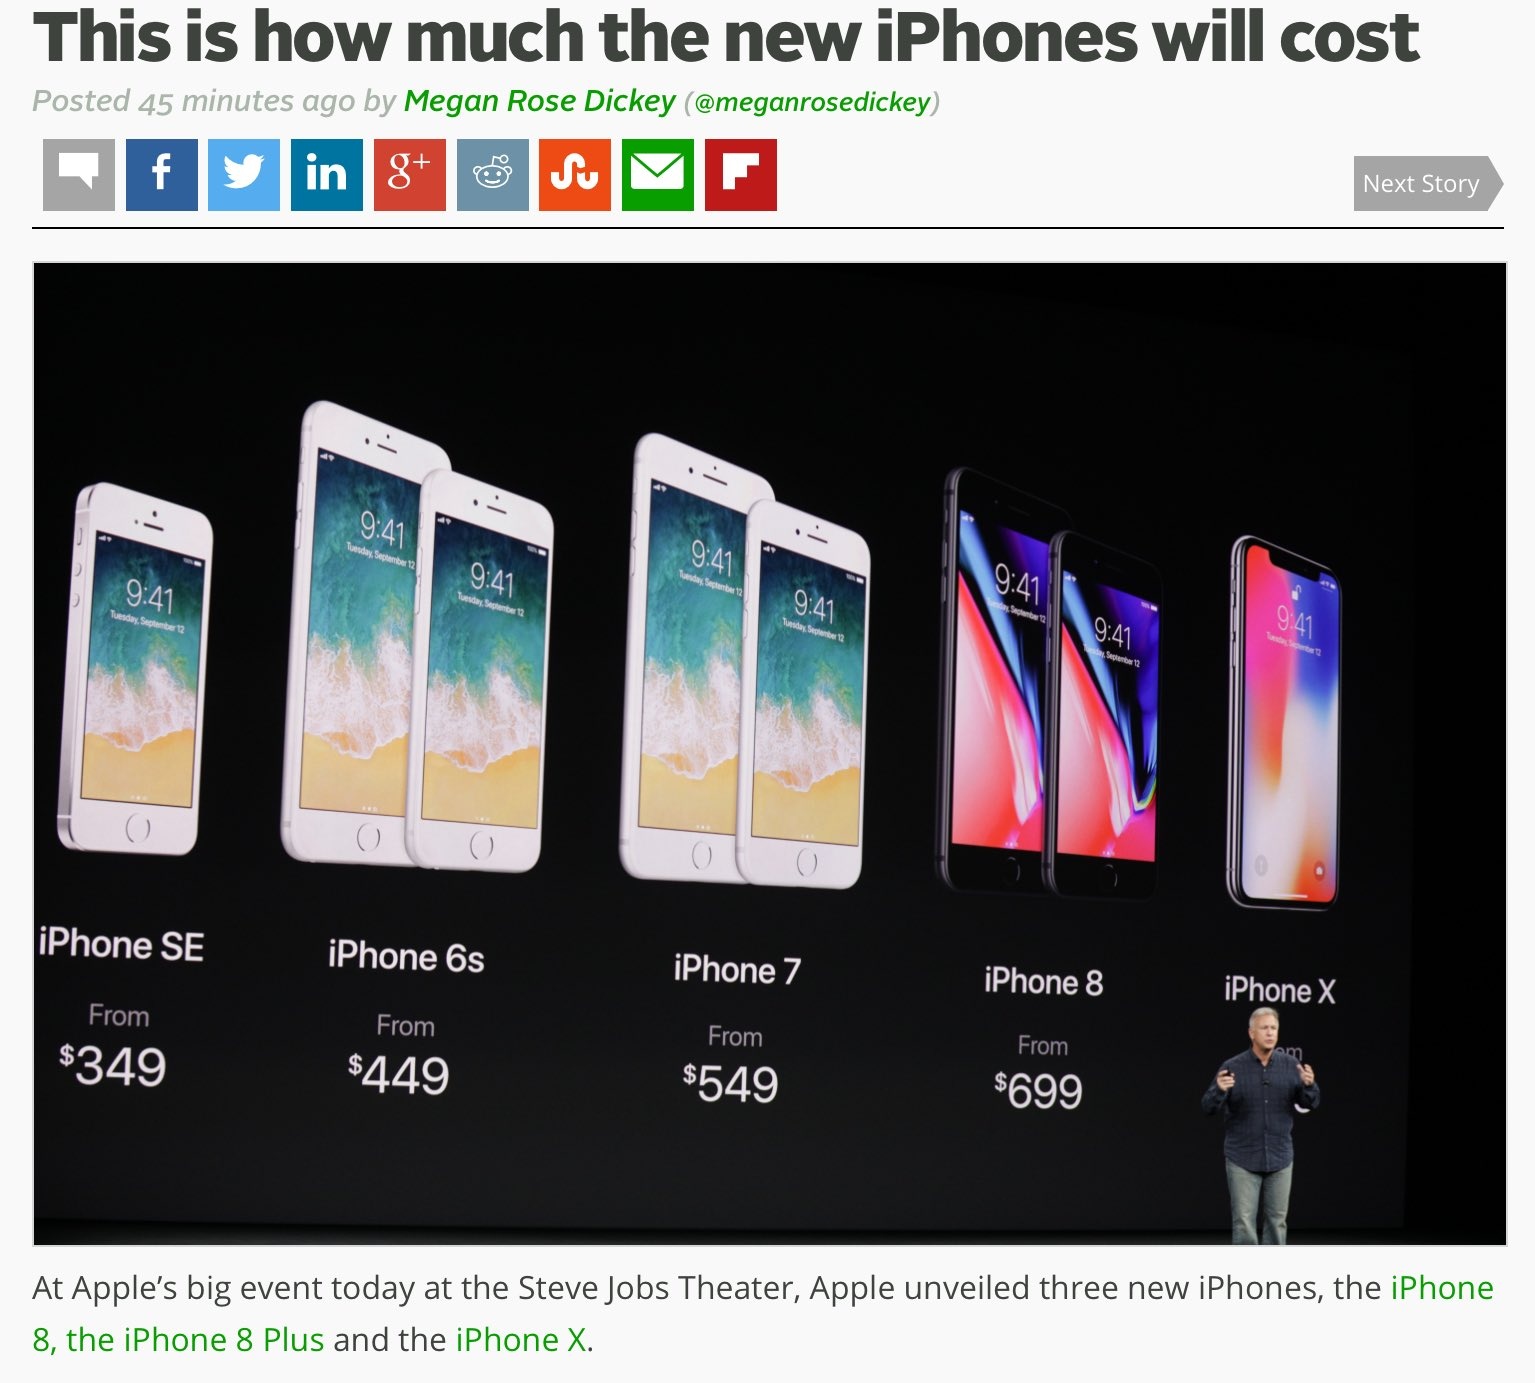 According to this @TechCrunch photo, the iPhone X will cost one human life. https://t.co/1NHMoGCucq